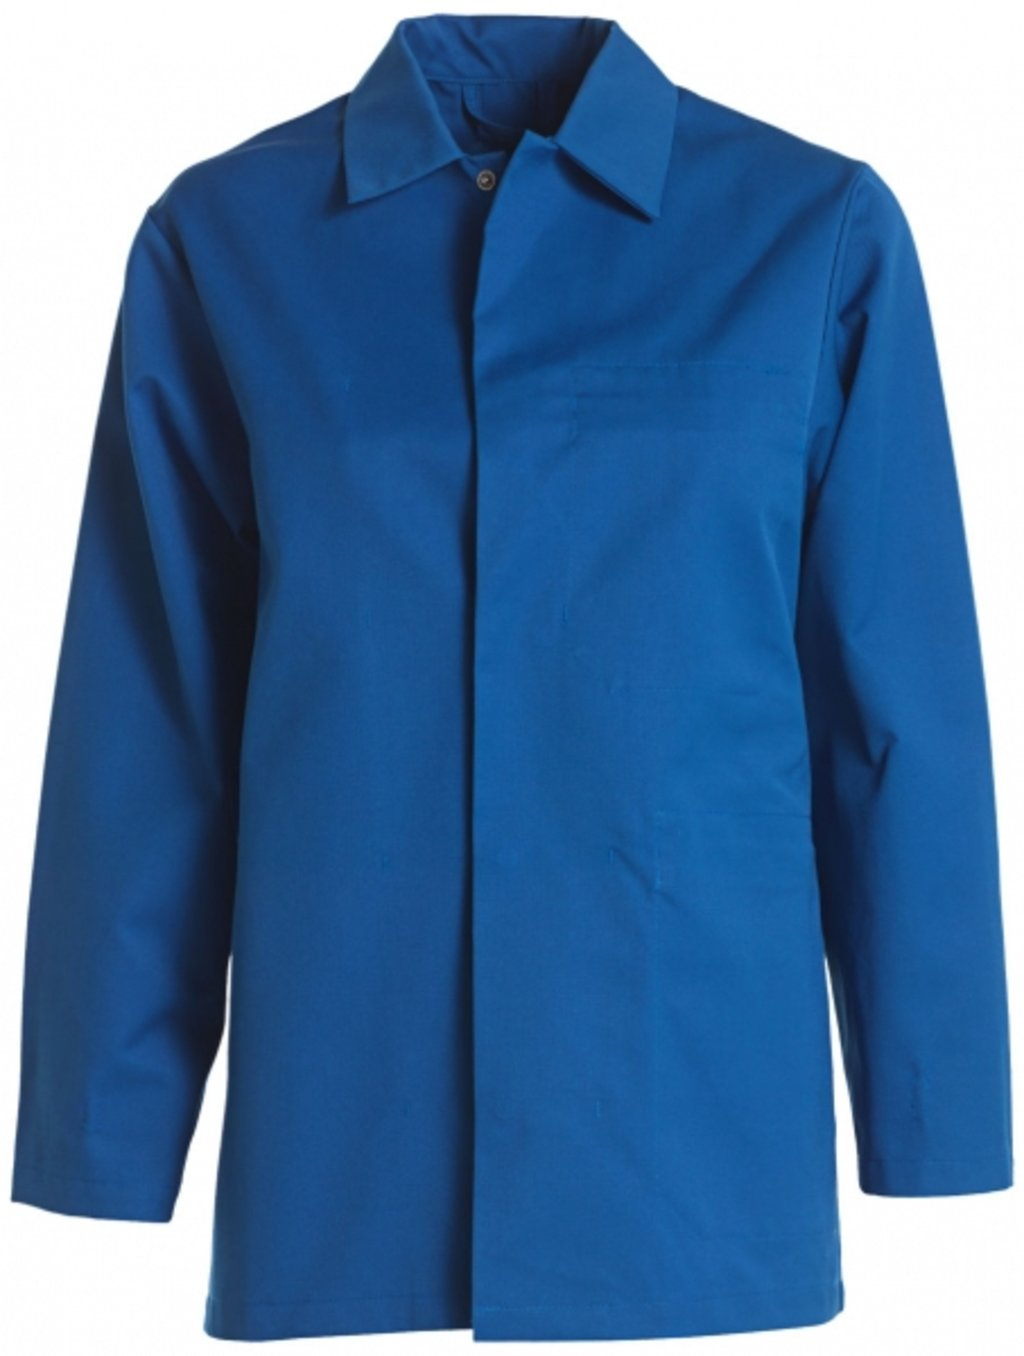 Kentaur jacket / coat, HACCP-approved, unisex, Royal Blue